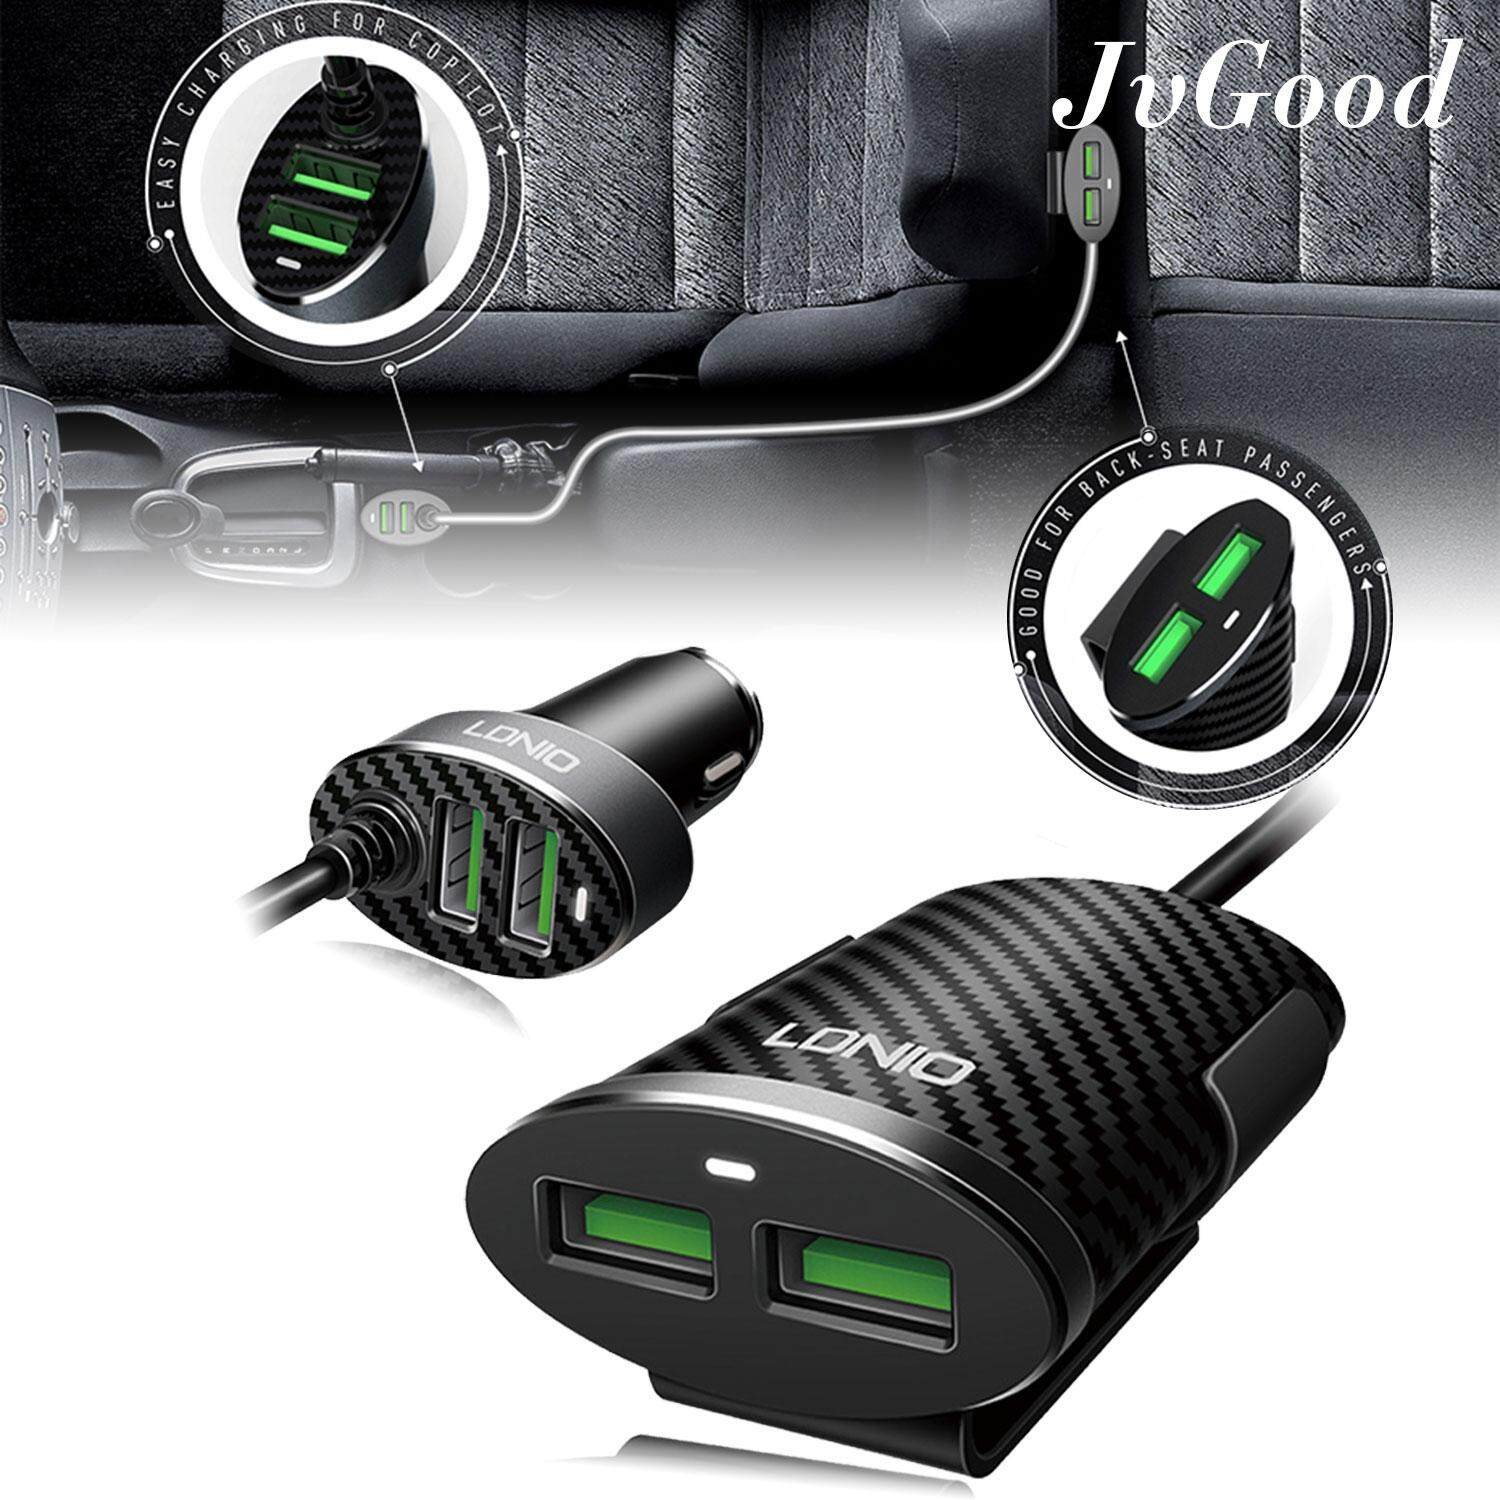 Jvgood Car Charger, 4 Usb Ports 5.1a Fast Car Adapter Auto Id Chip Sharing Dual Charger Modes Convenient For Sharing Between Front And Back Seats 1m By Jvgood.